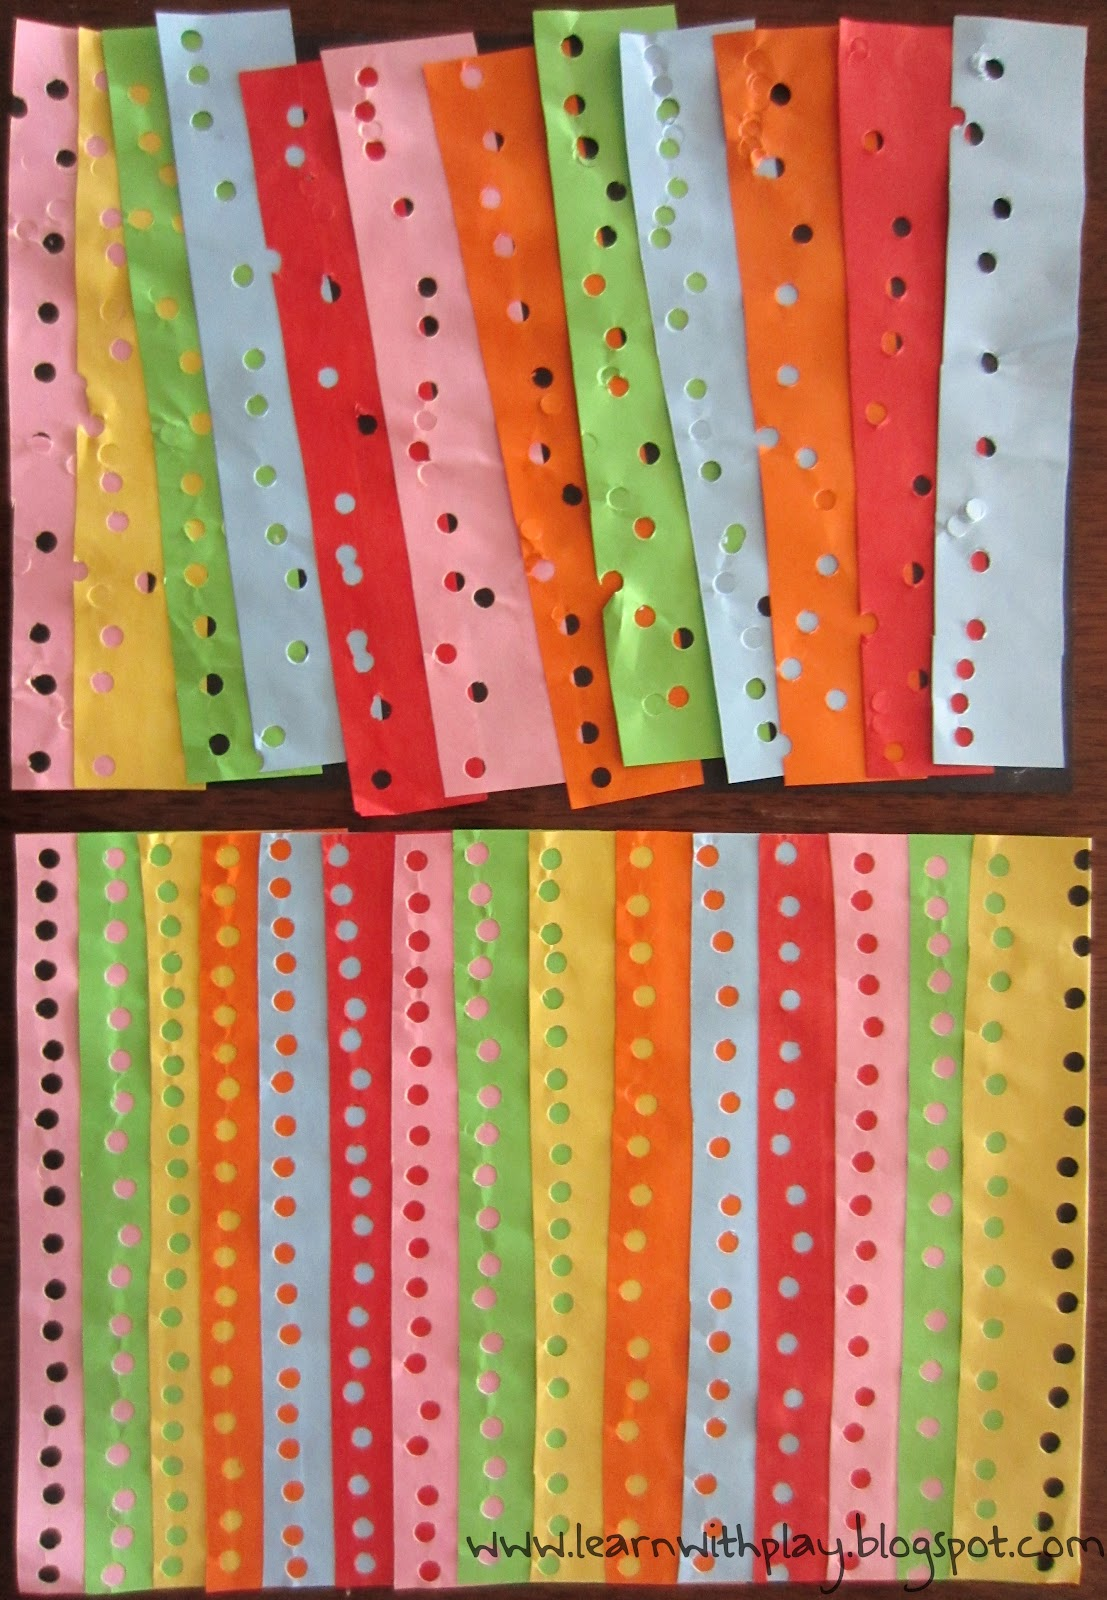 Learn with play at home hole punch art for Craft hole punch set